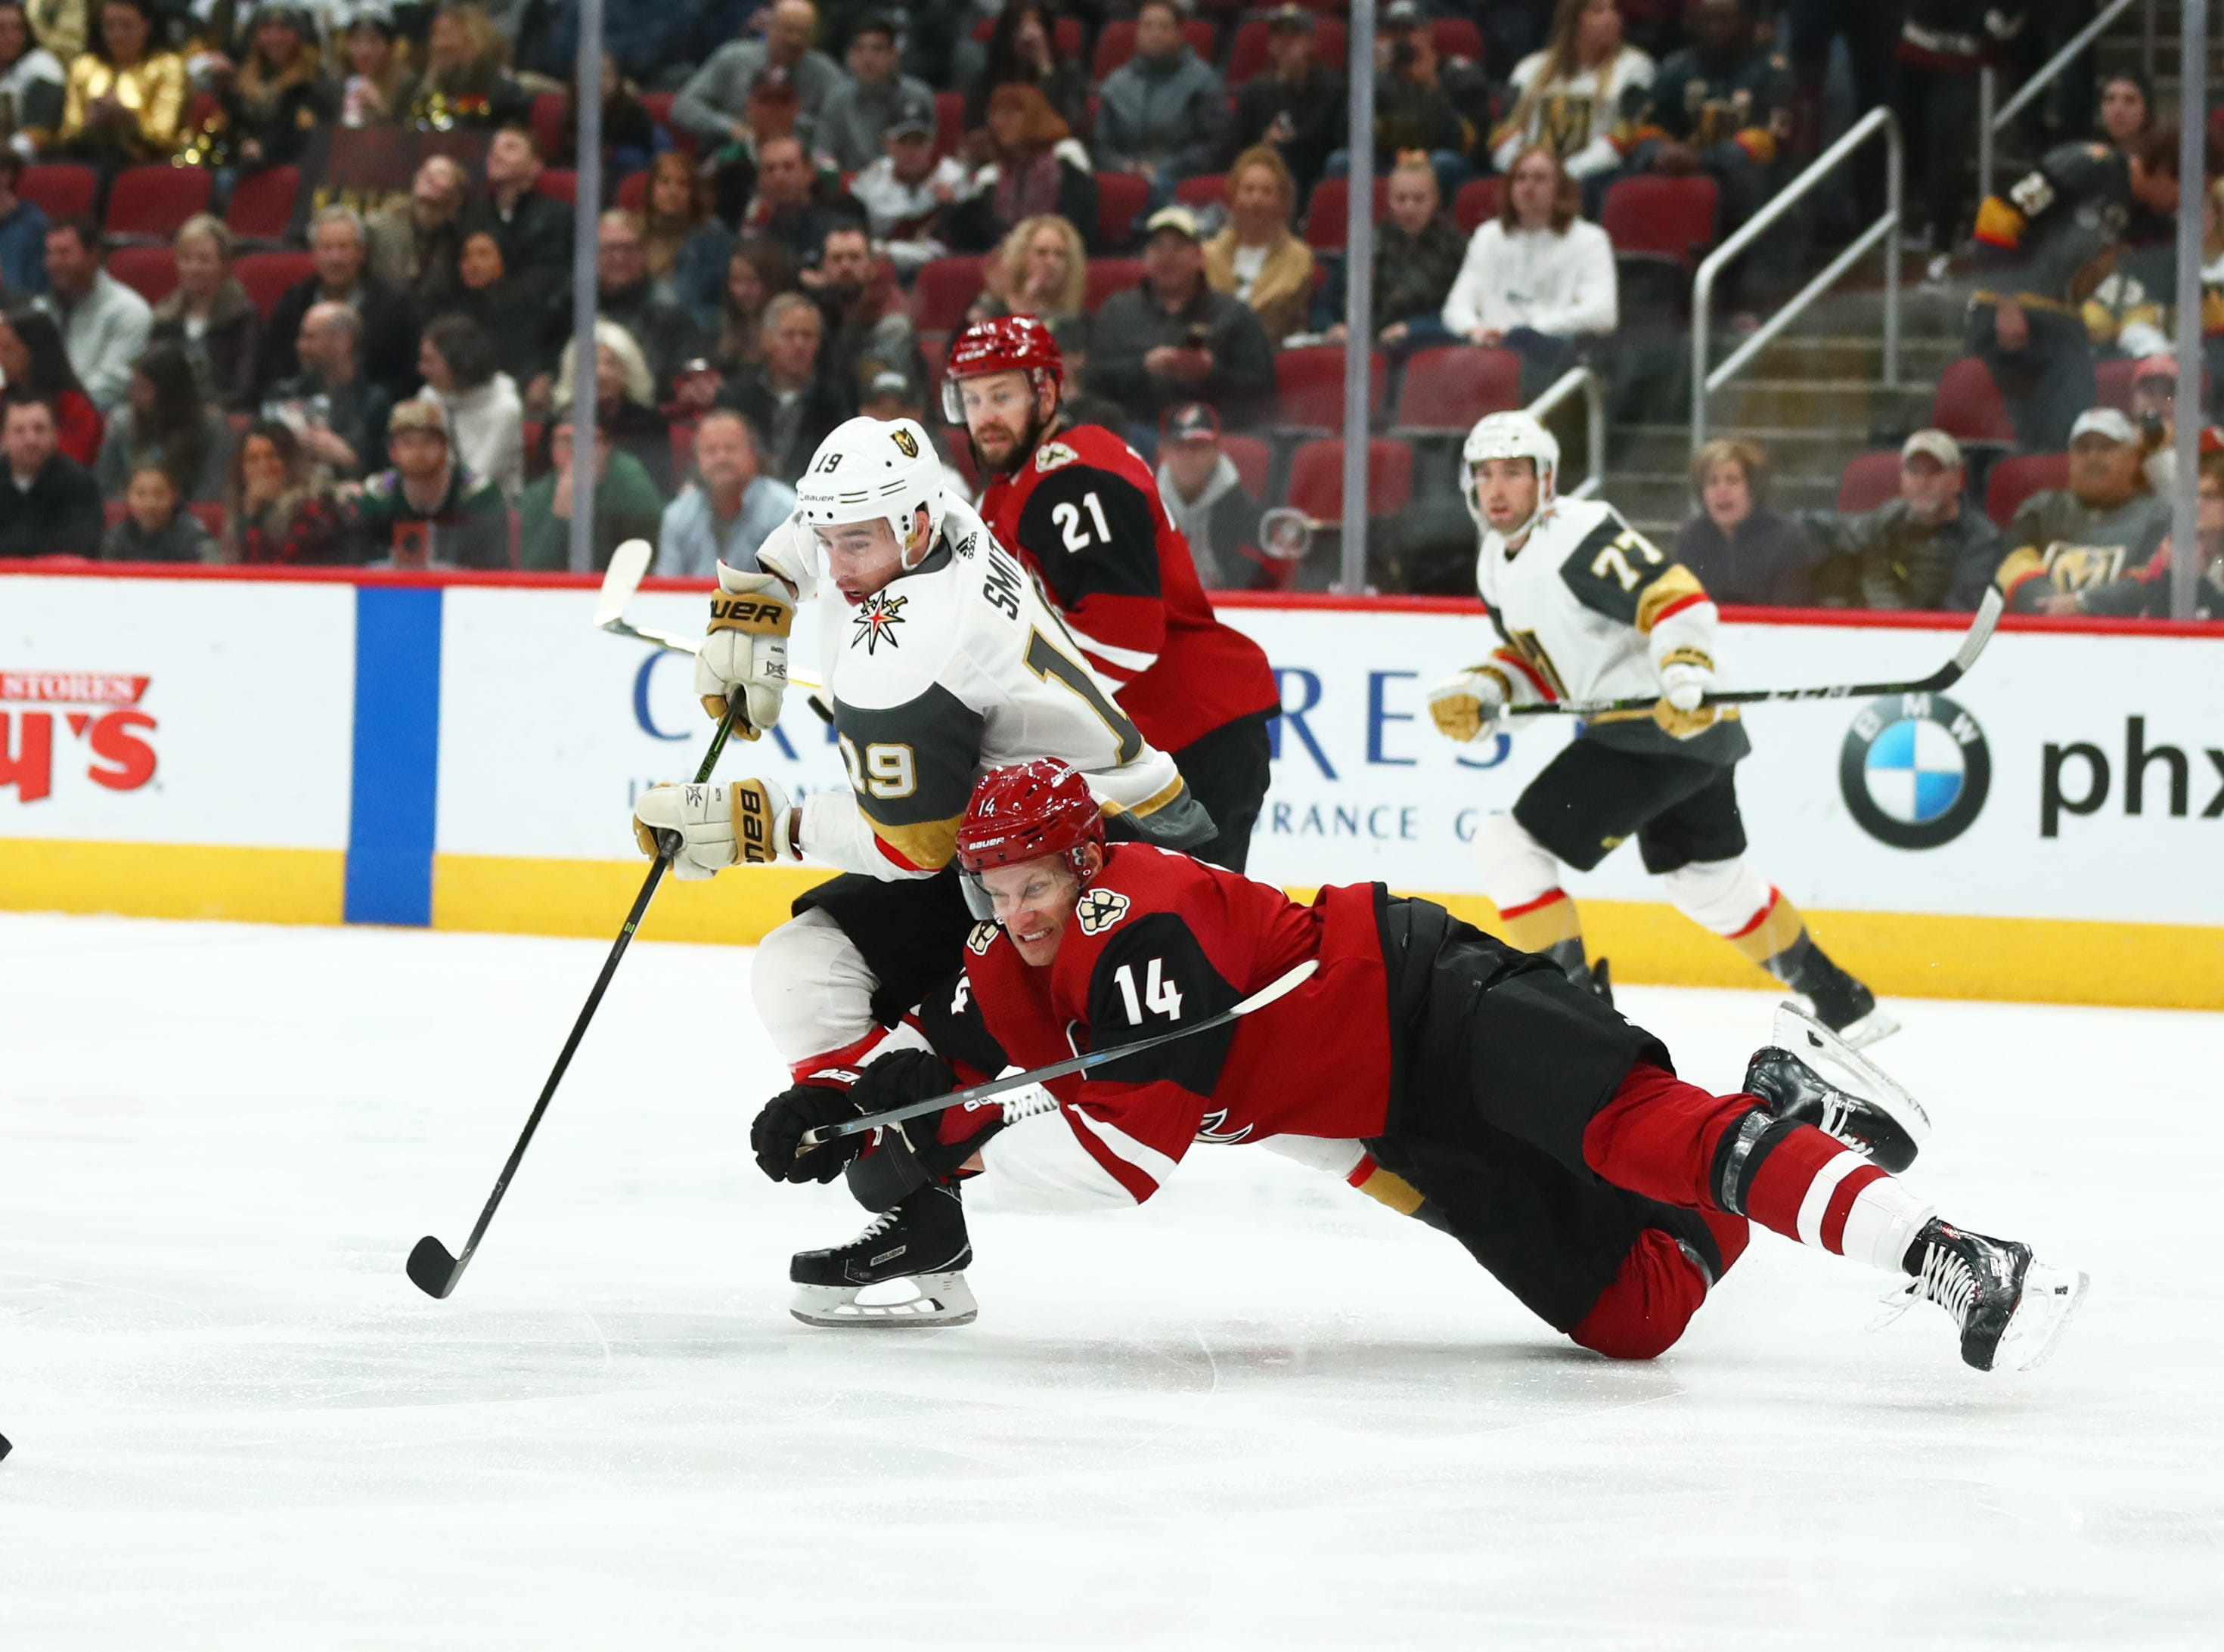 Dec. 30: Arizona Coyotes right wing Richard Panik (14) falls to the ice as he battles for the puck with Vegas Golden Knights right wing Reilly Smith (19) in the first period at Gila River Arena.